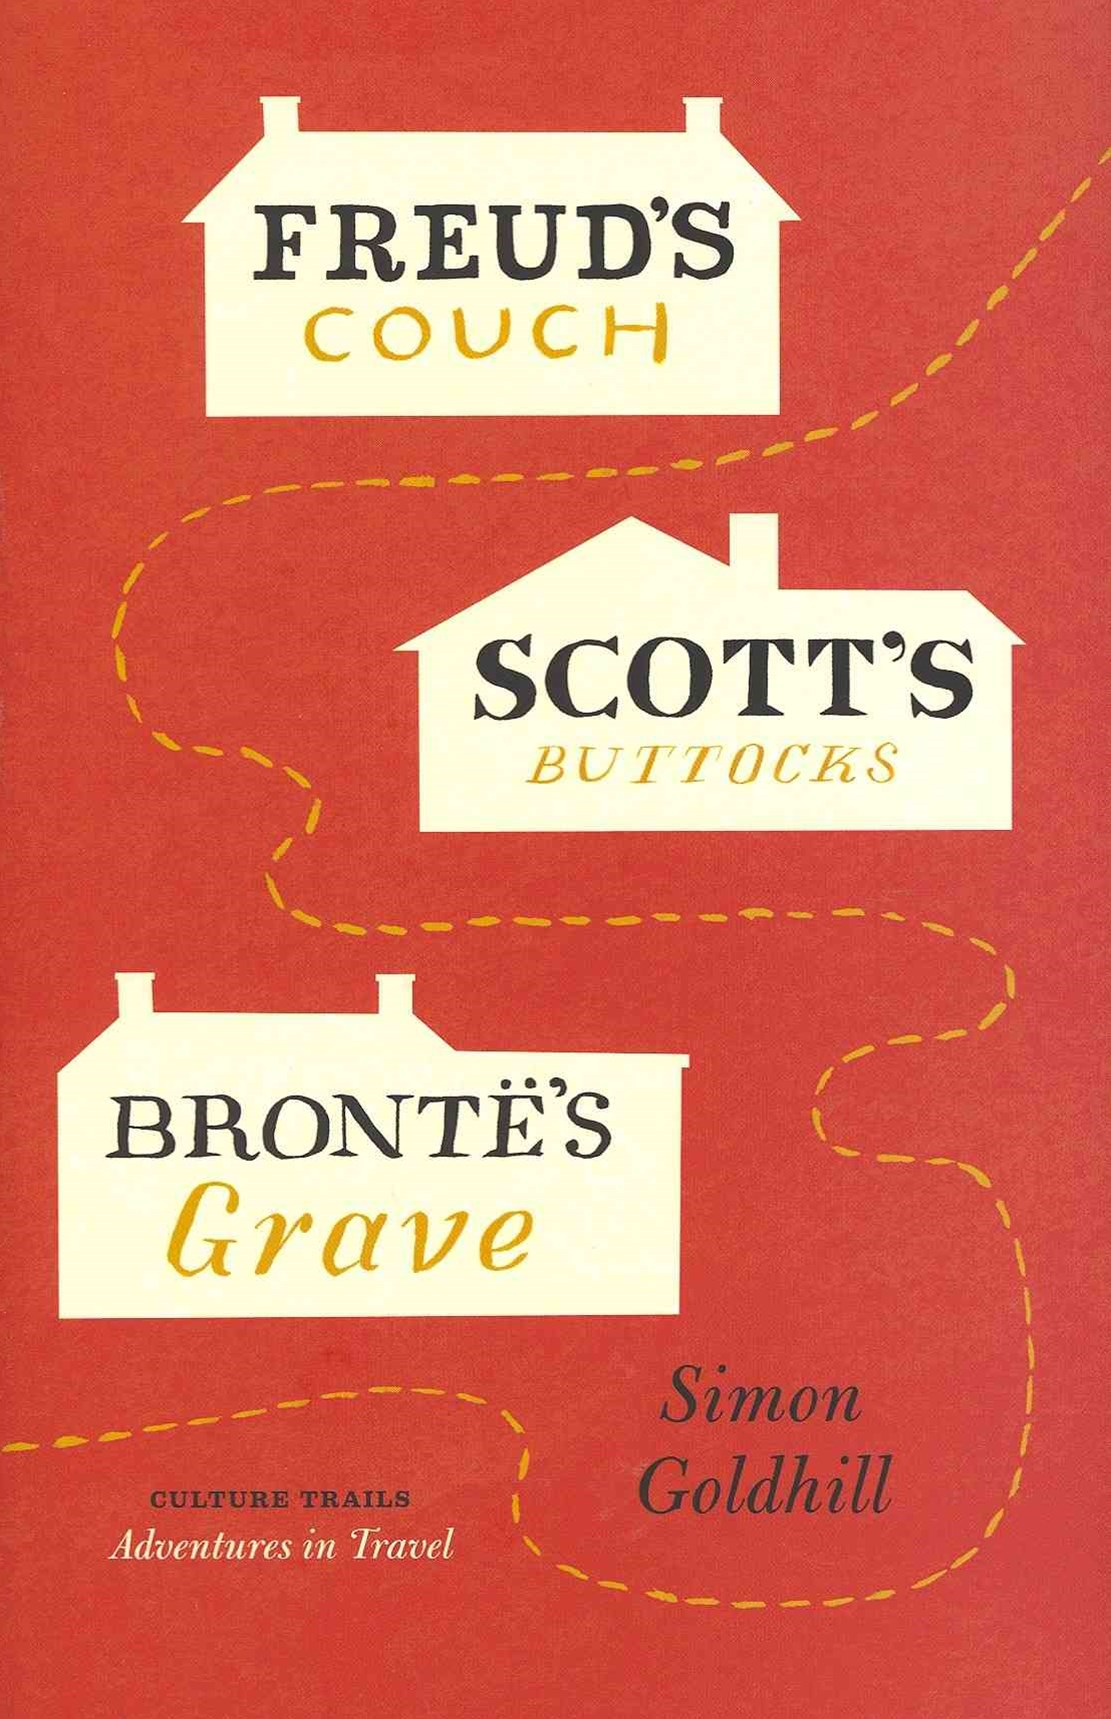 Freud's Couch, Scott's Buttocks, Bronte's Grave